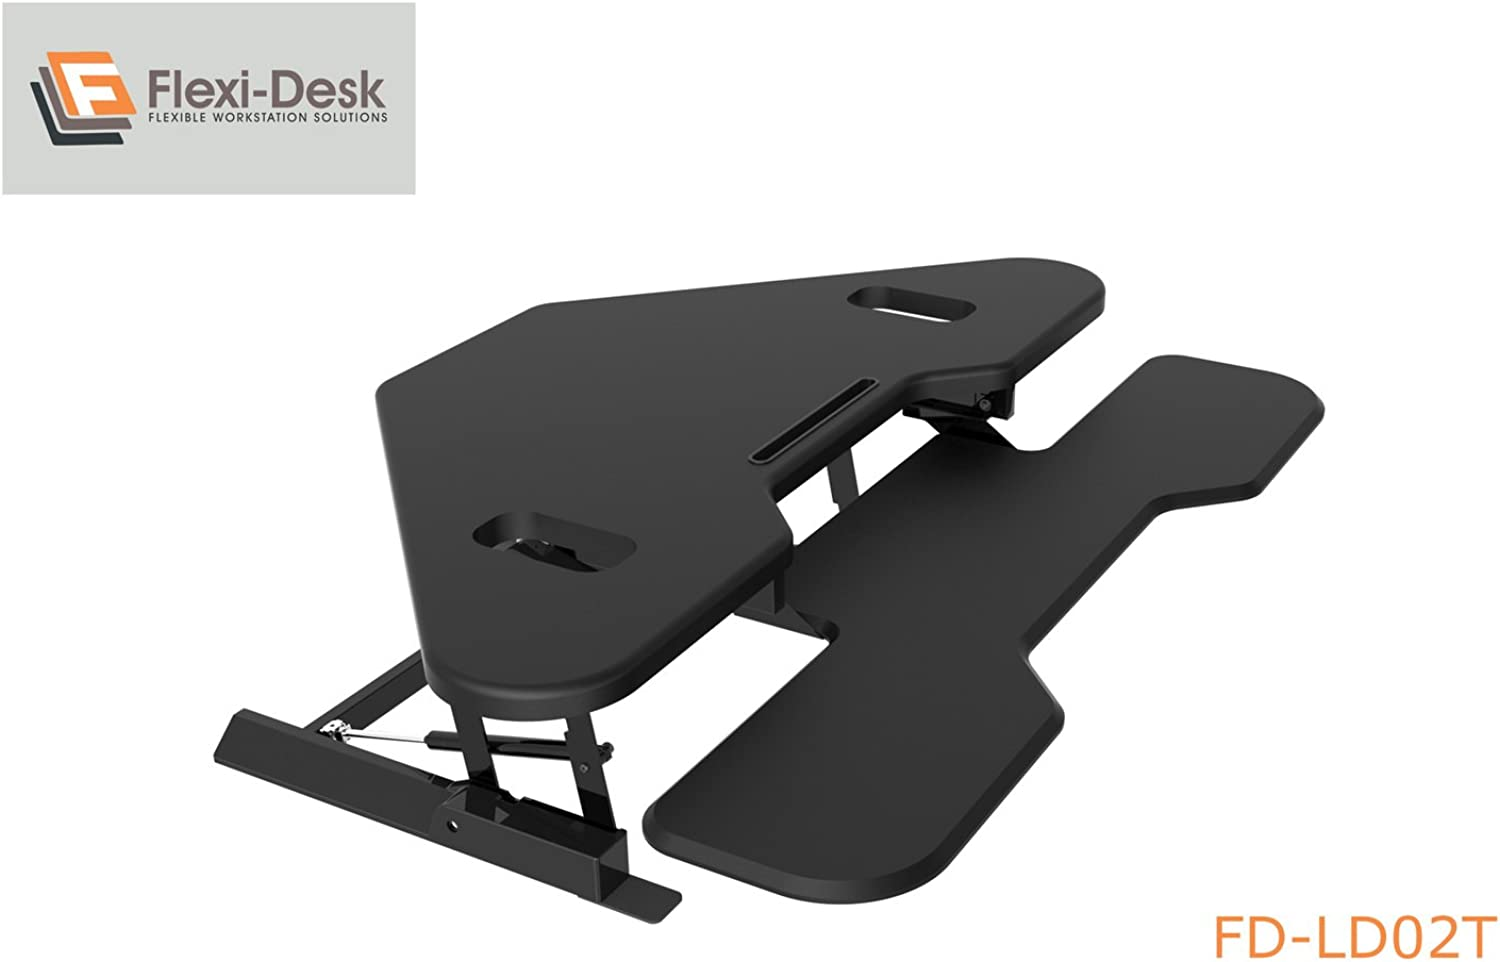 Screen Mounts Corner Sit Stand Desk, Dual Screen Height Adjustable Workstation Space with 8 Positions, 15kg Capacity and iPad iPhone Rest Flexi-Desk LD02T